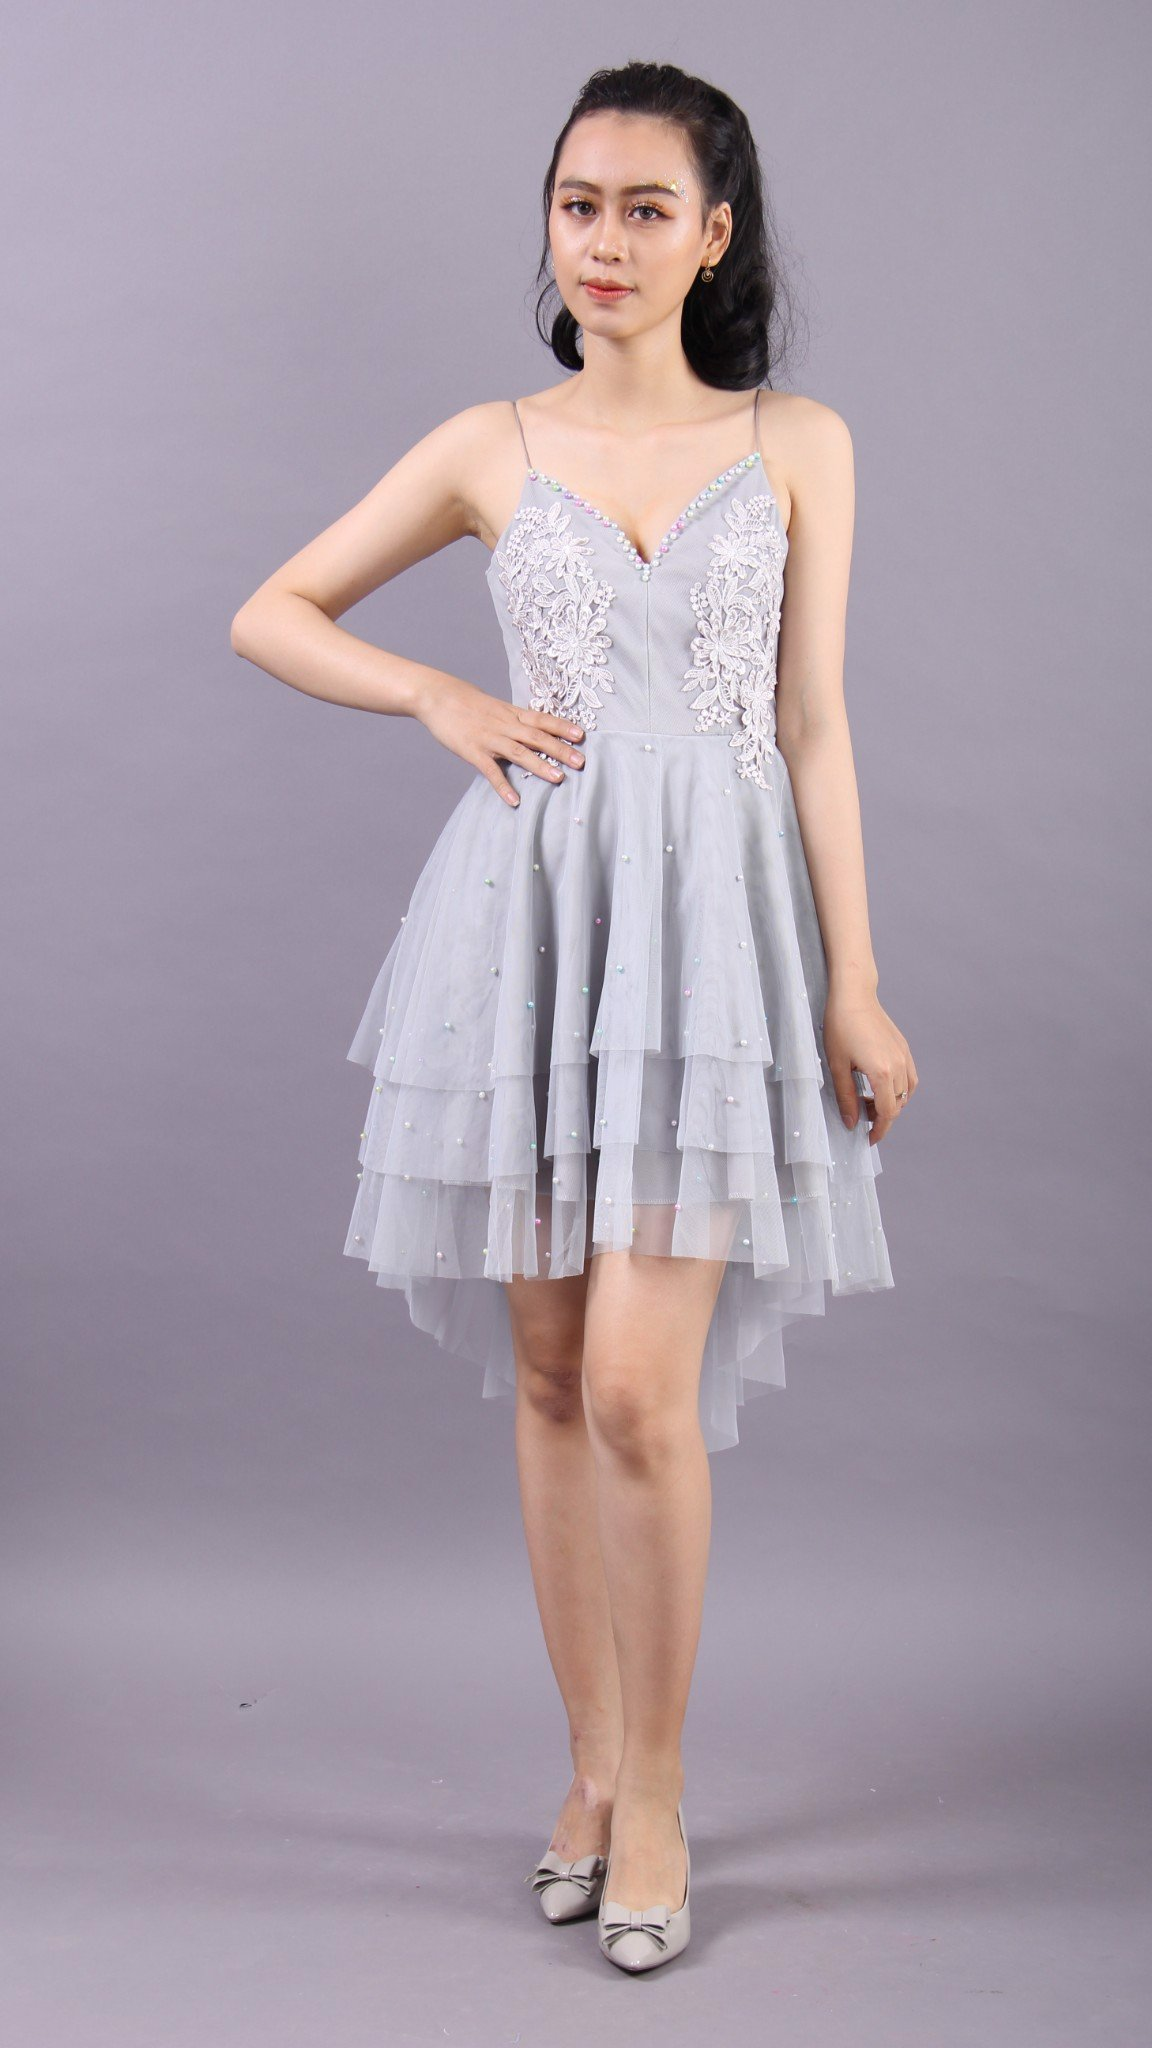 3D flower and pearls grey babydoll dress